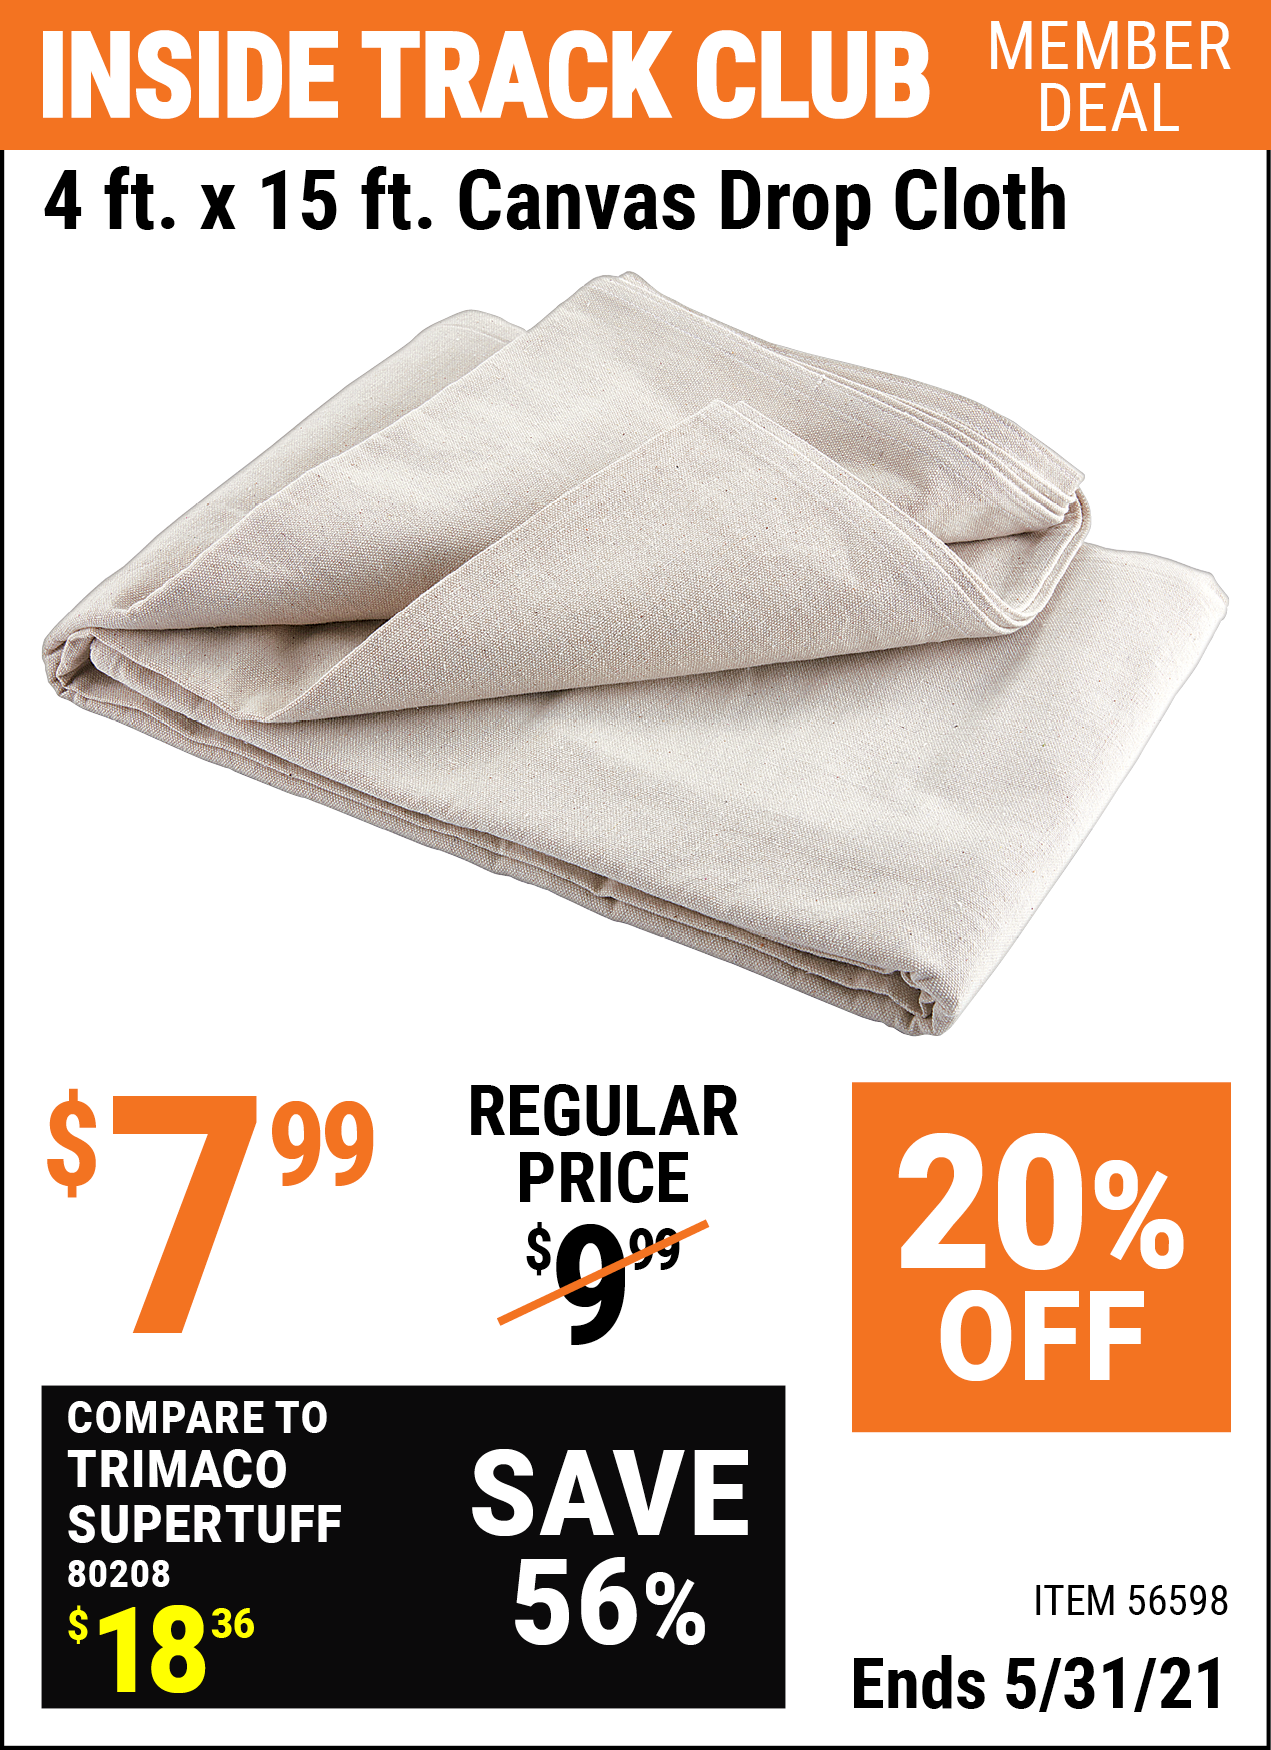 Inside Track Club members can buy the 4 X 15 Canvas Drop Cloth (Item 56598) for $7.99, valid through 5/31/2021.